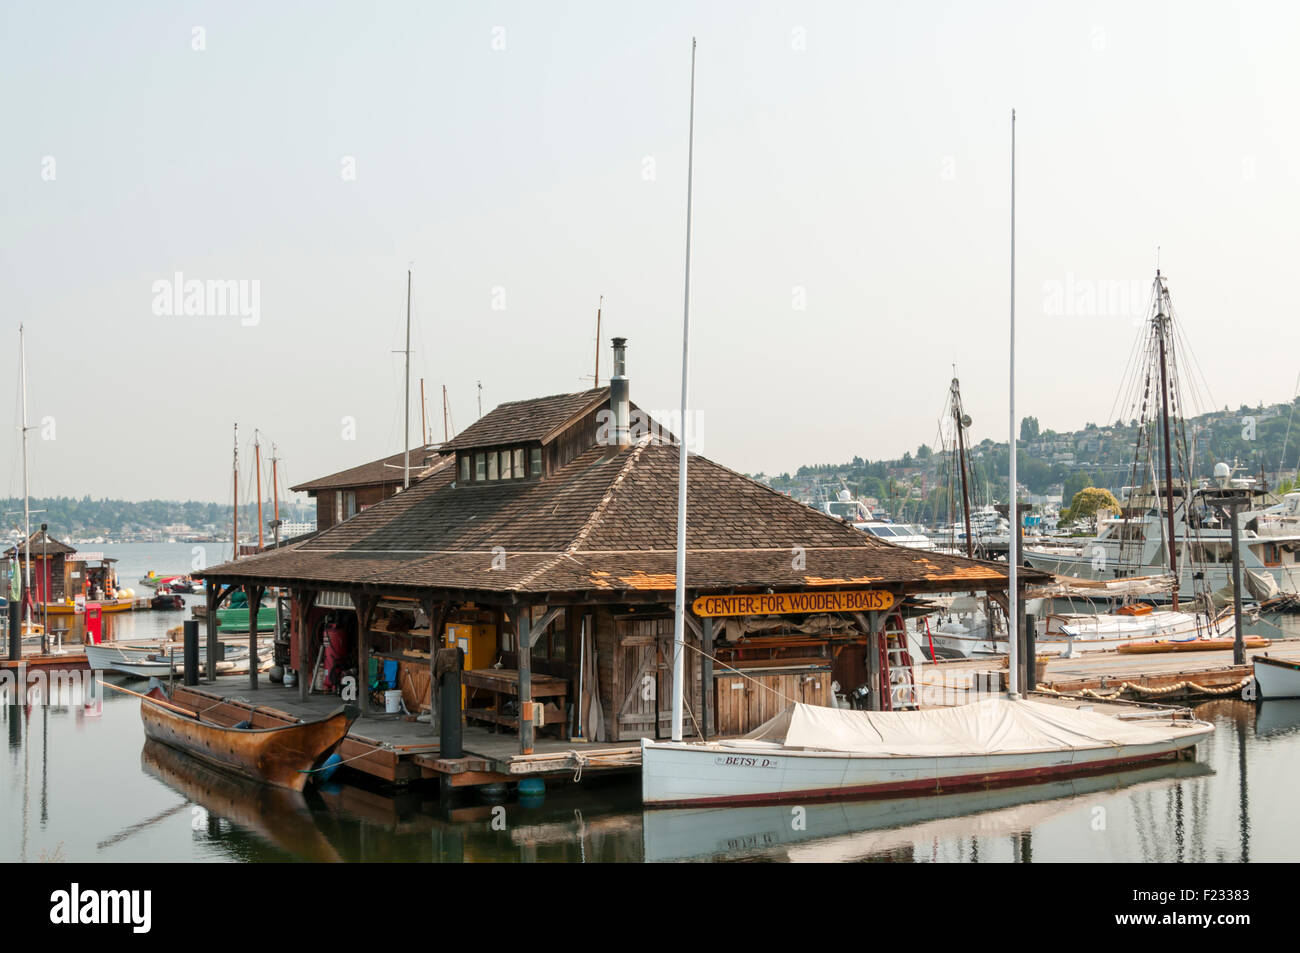 The Center for Wooden Boats on South Lake Union, Seattle. - Stock Image